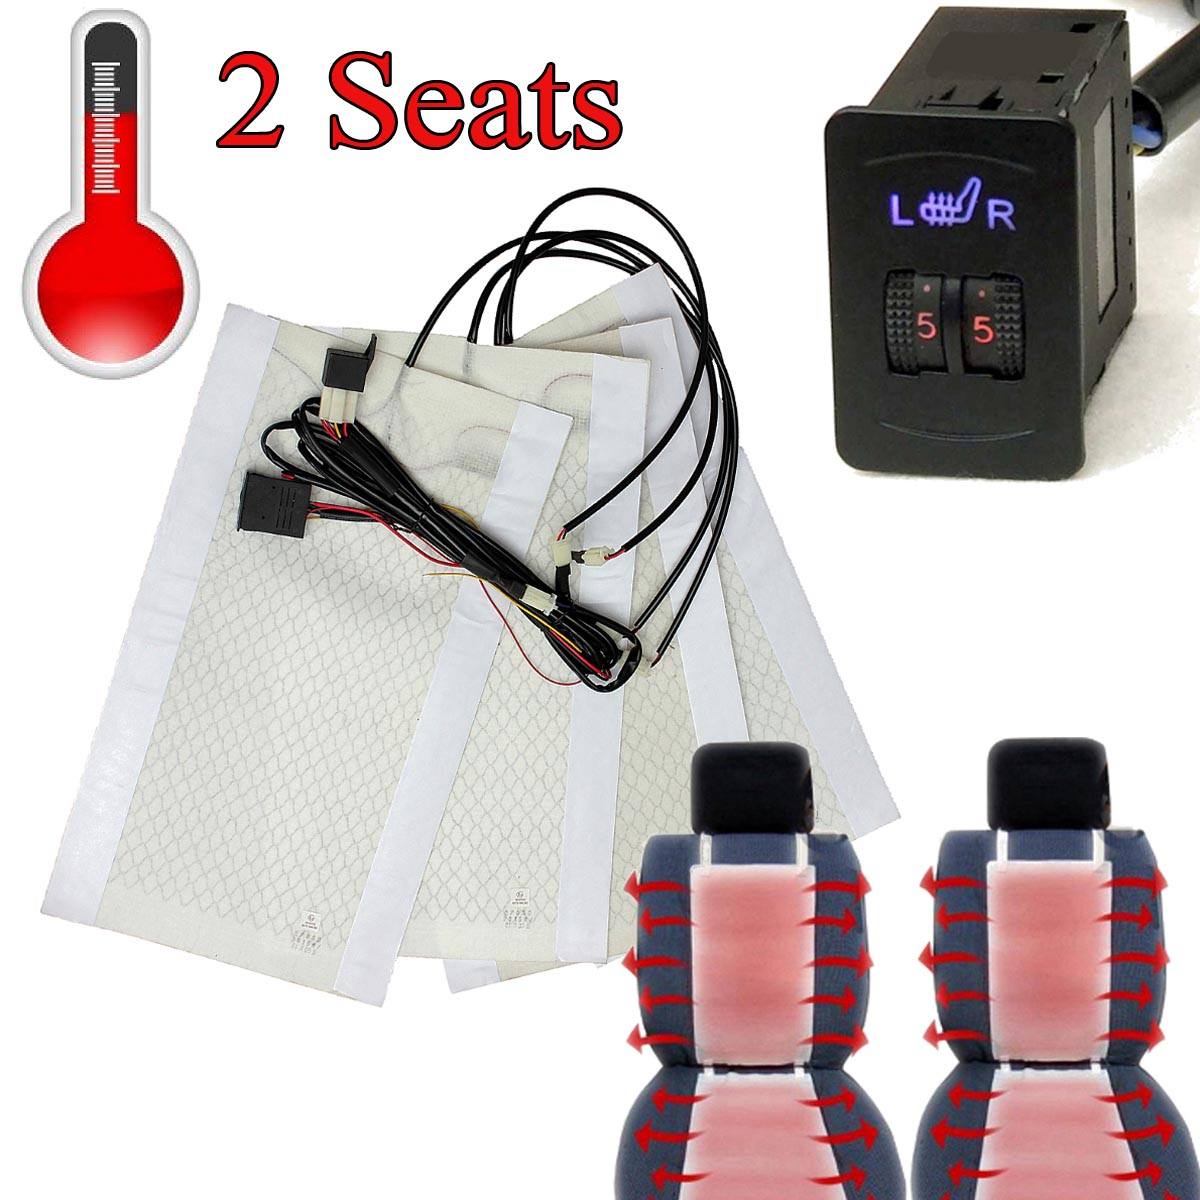 2 Seats 4 Pads Universal  Heated Seat Heater 12V Pads 2 Dial 5 Level Switch Winter Warmer Seat Covers 2/5 Level